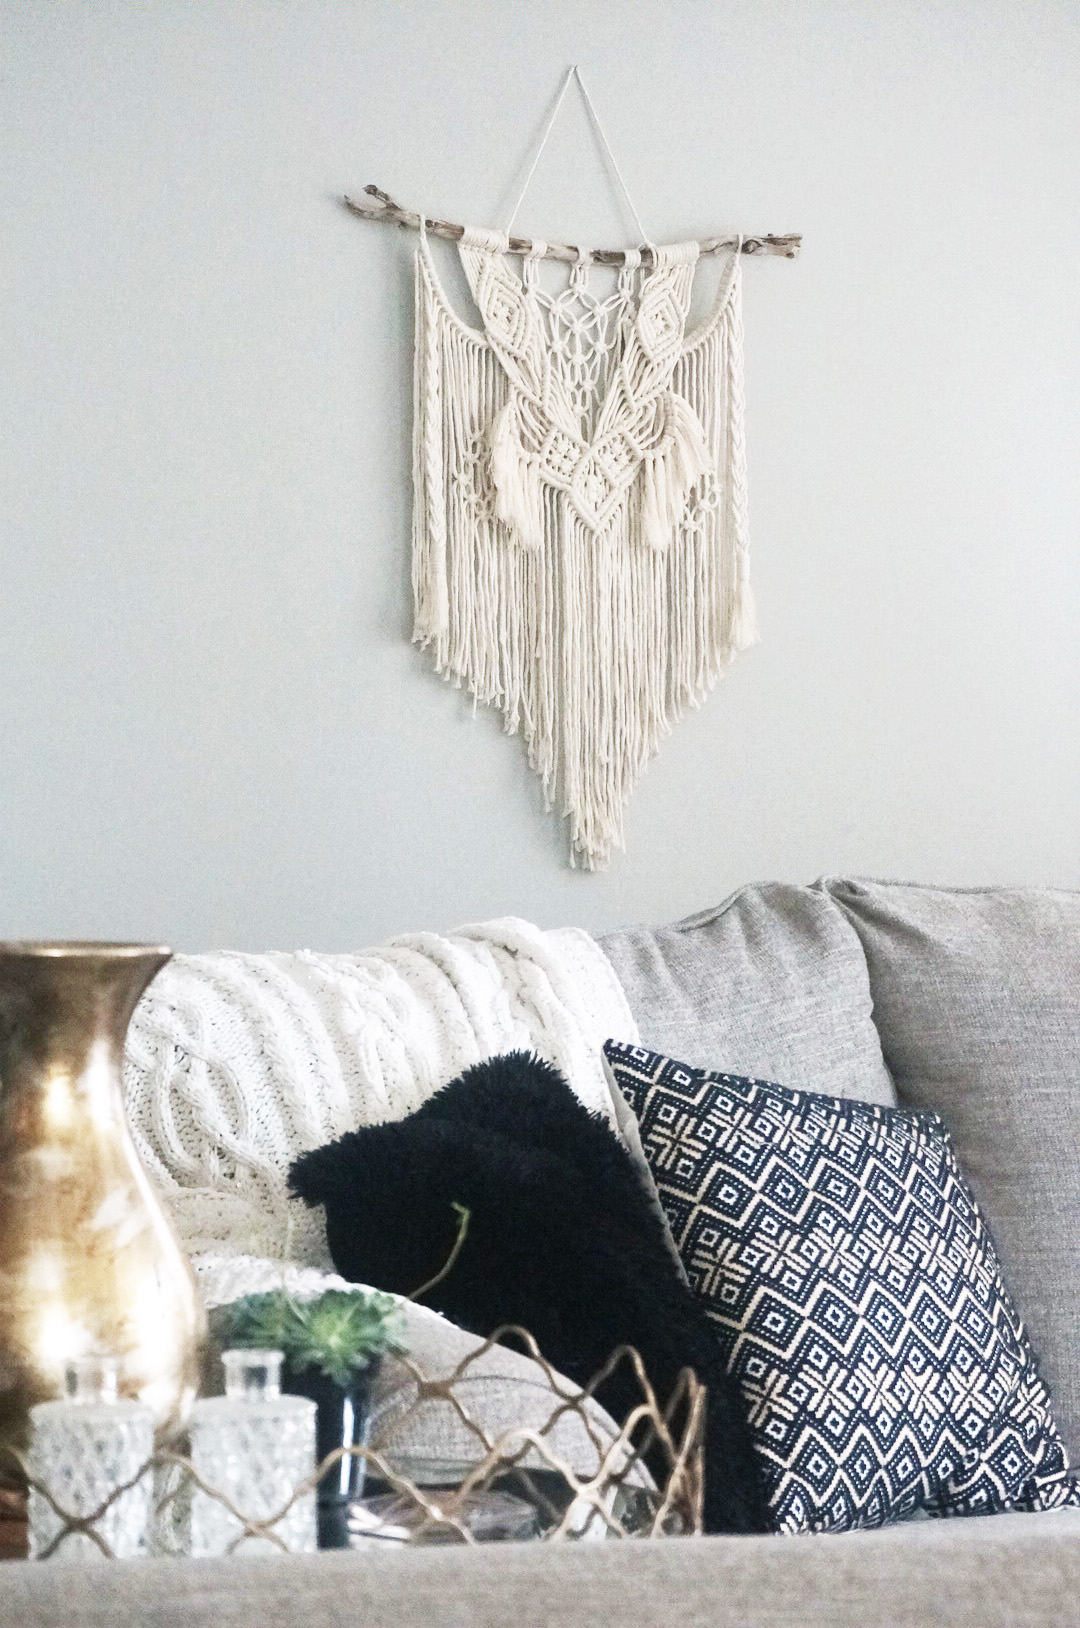 $70  |  Medium/Large Macrame Wall Hanging  |  Ivory